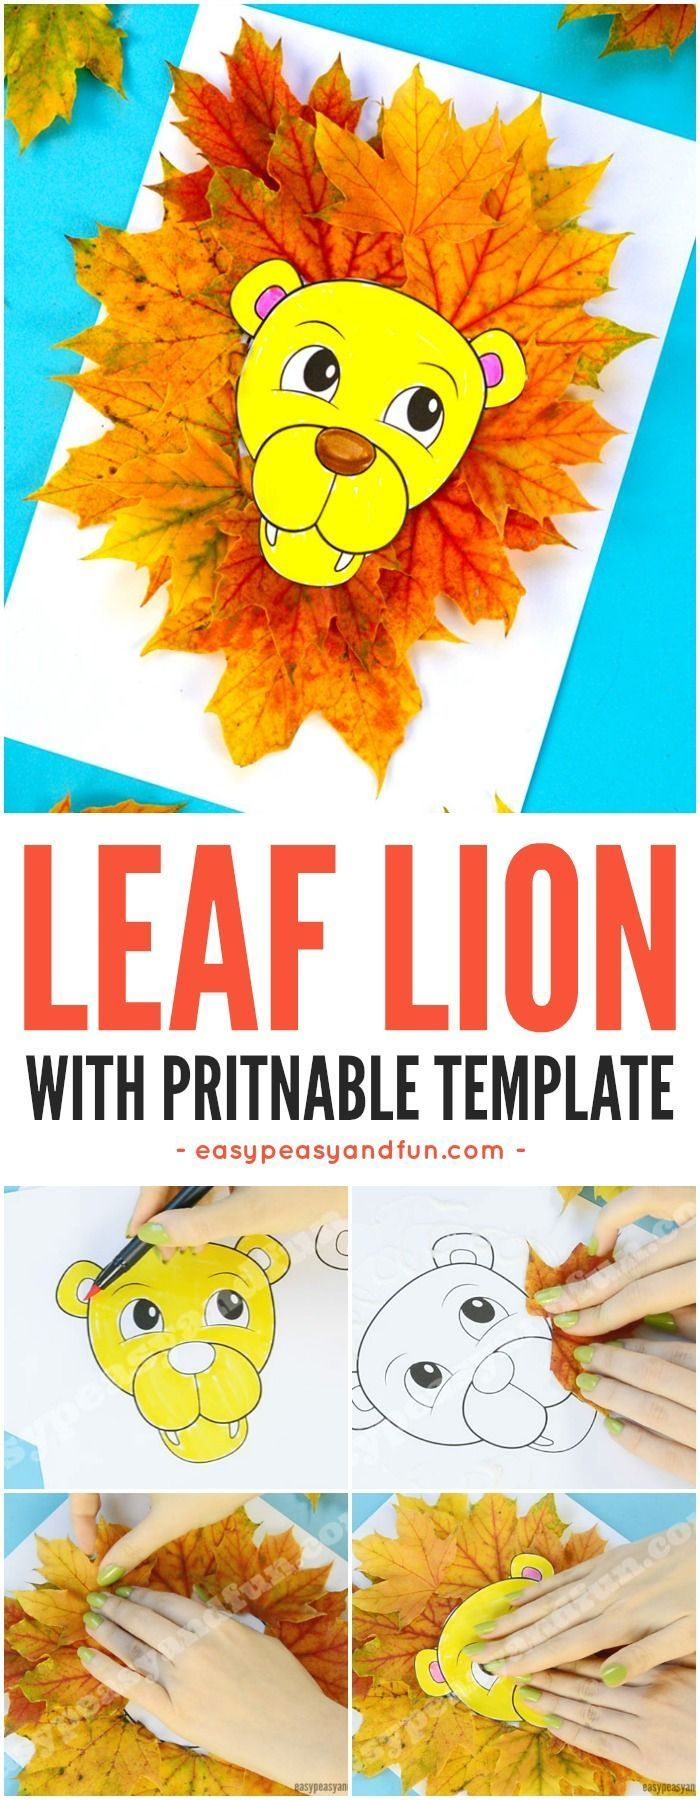 Eloquent image with printable fall crafts